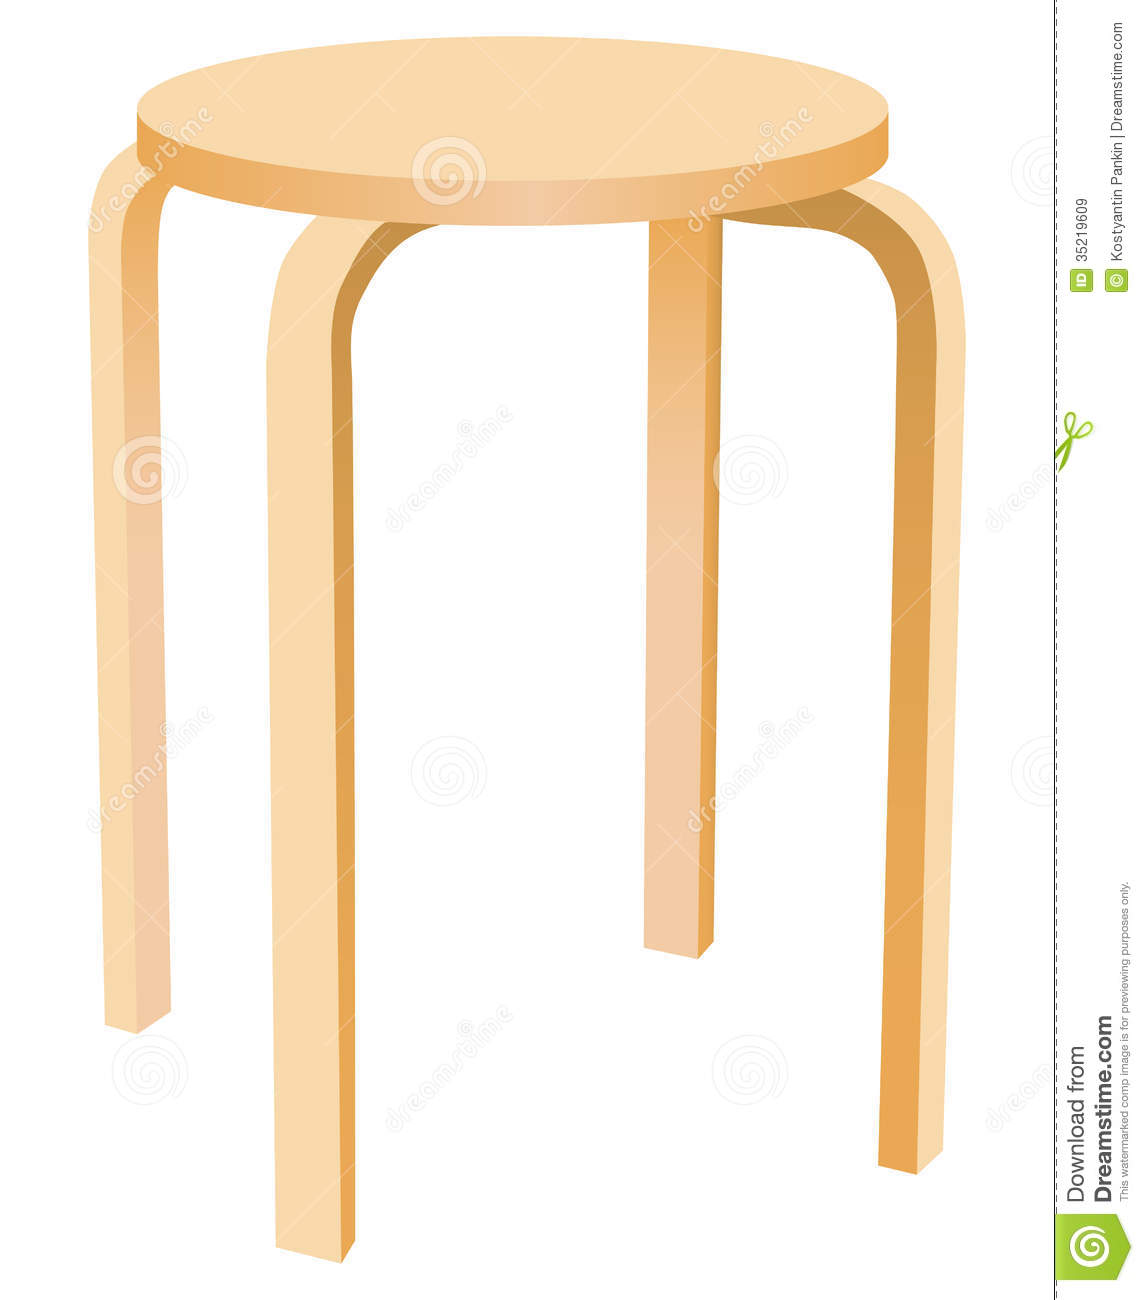 Kitchen Stool Royalty Free Stock Images Image 35219609 : kitchen stool classic round wooden vector illustration 35219609 from dreamstime.com size 1144 x 1300 jpeg 65kB